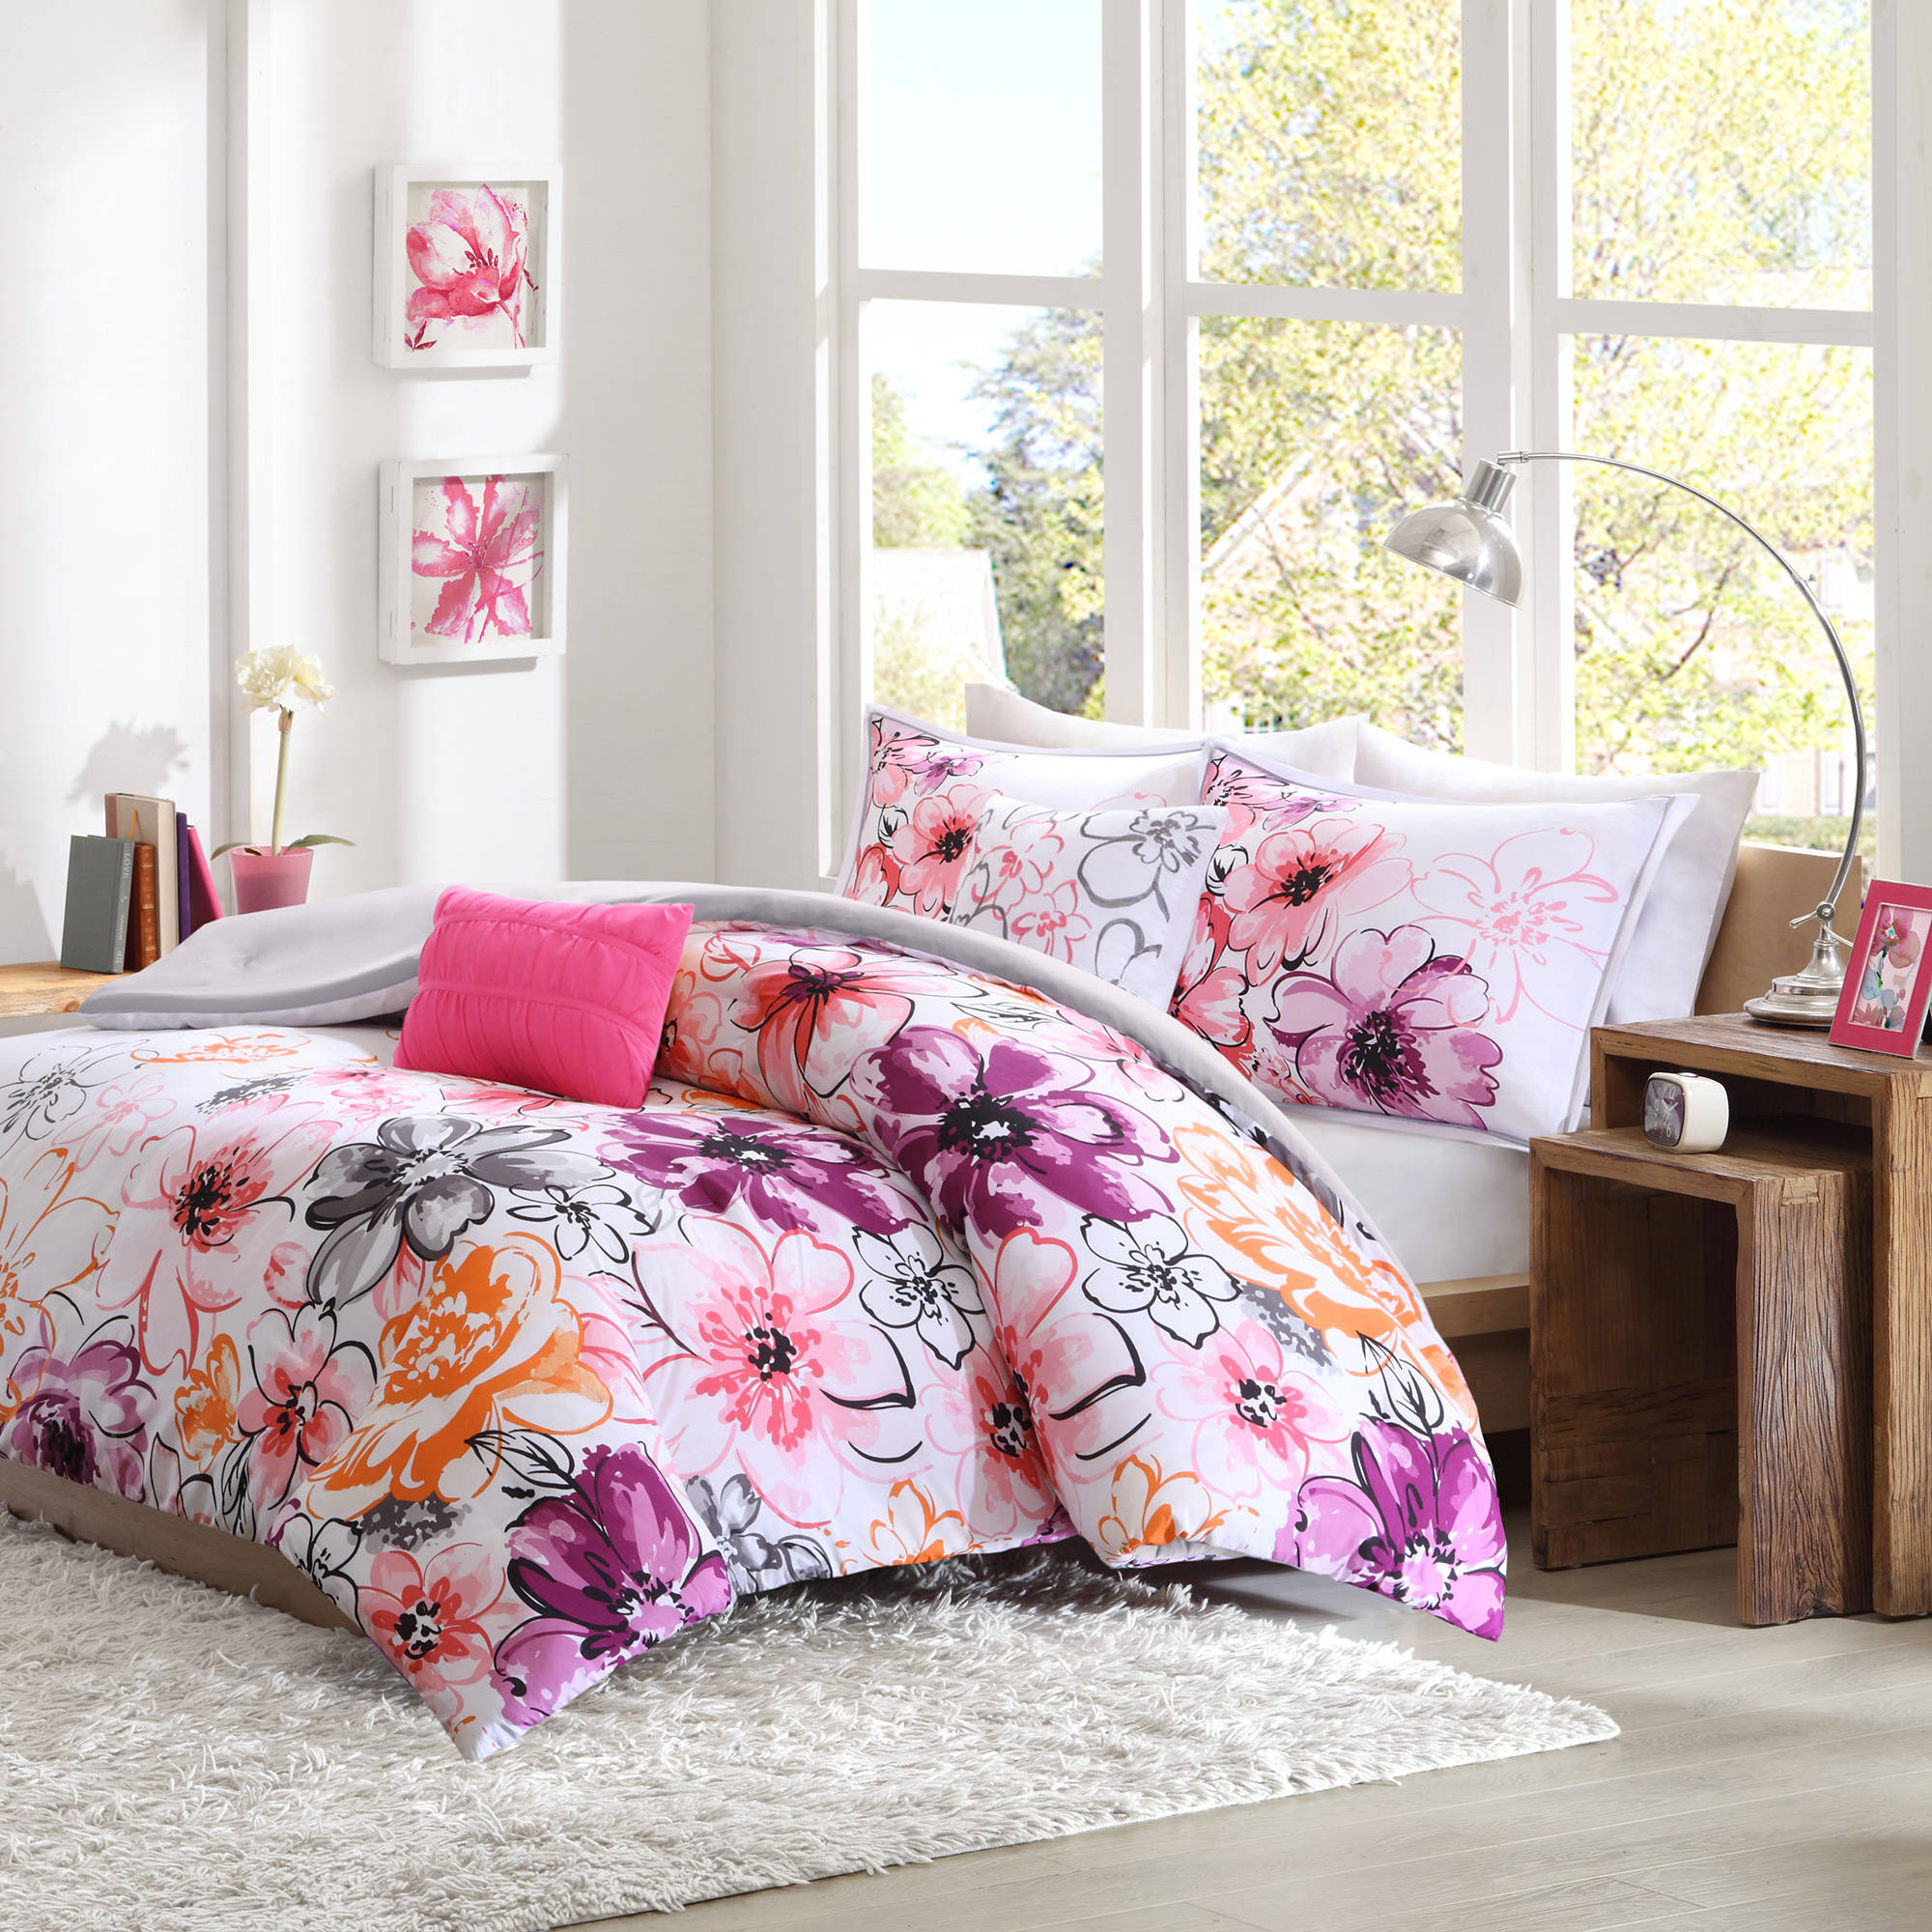 Home Essence Apartment Skye Bedding Comforter Set